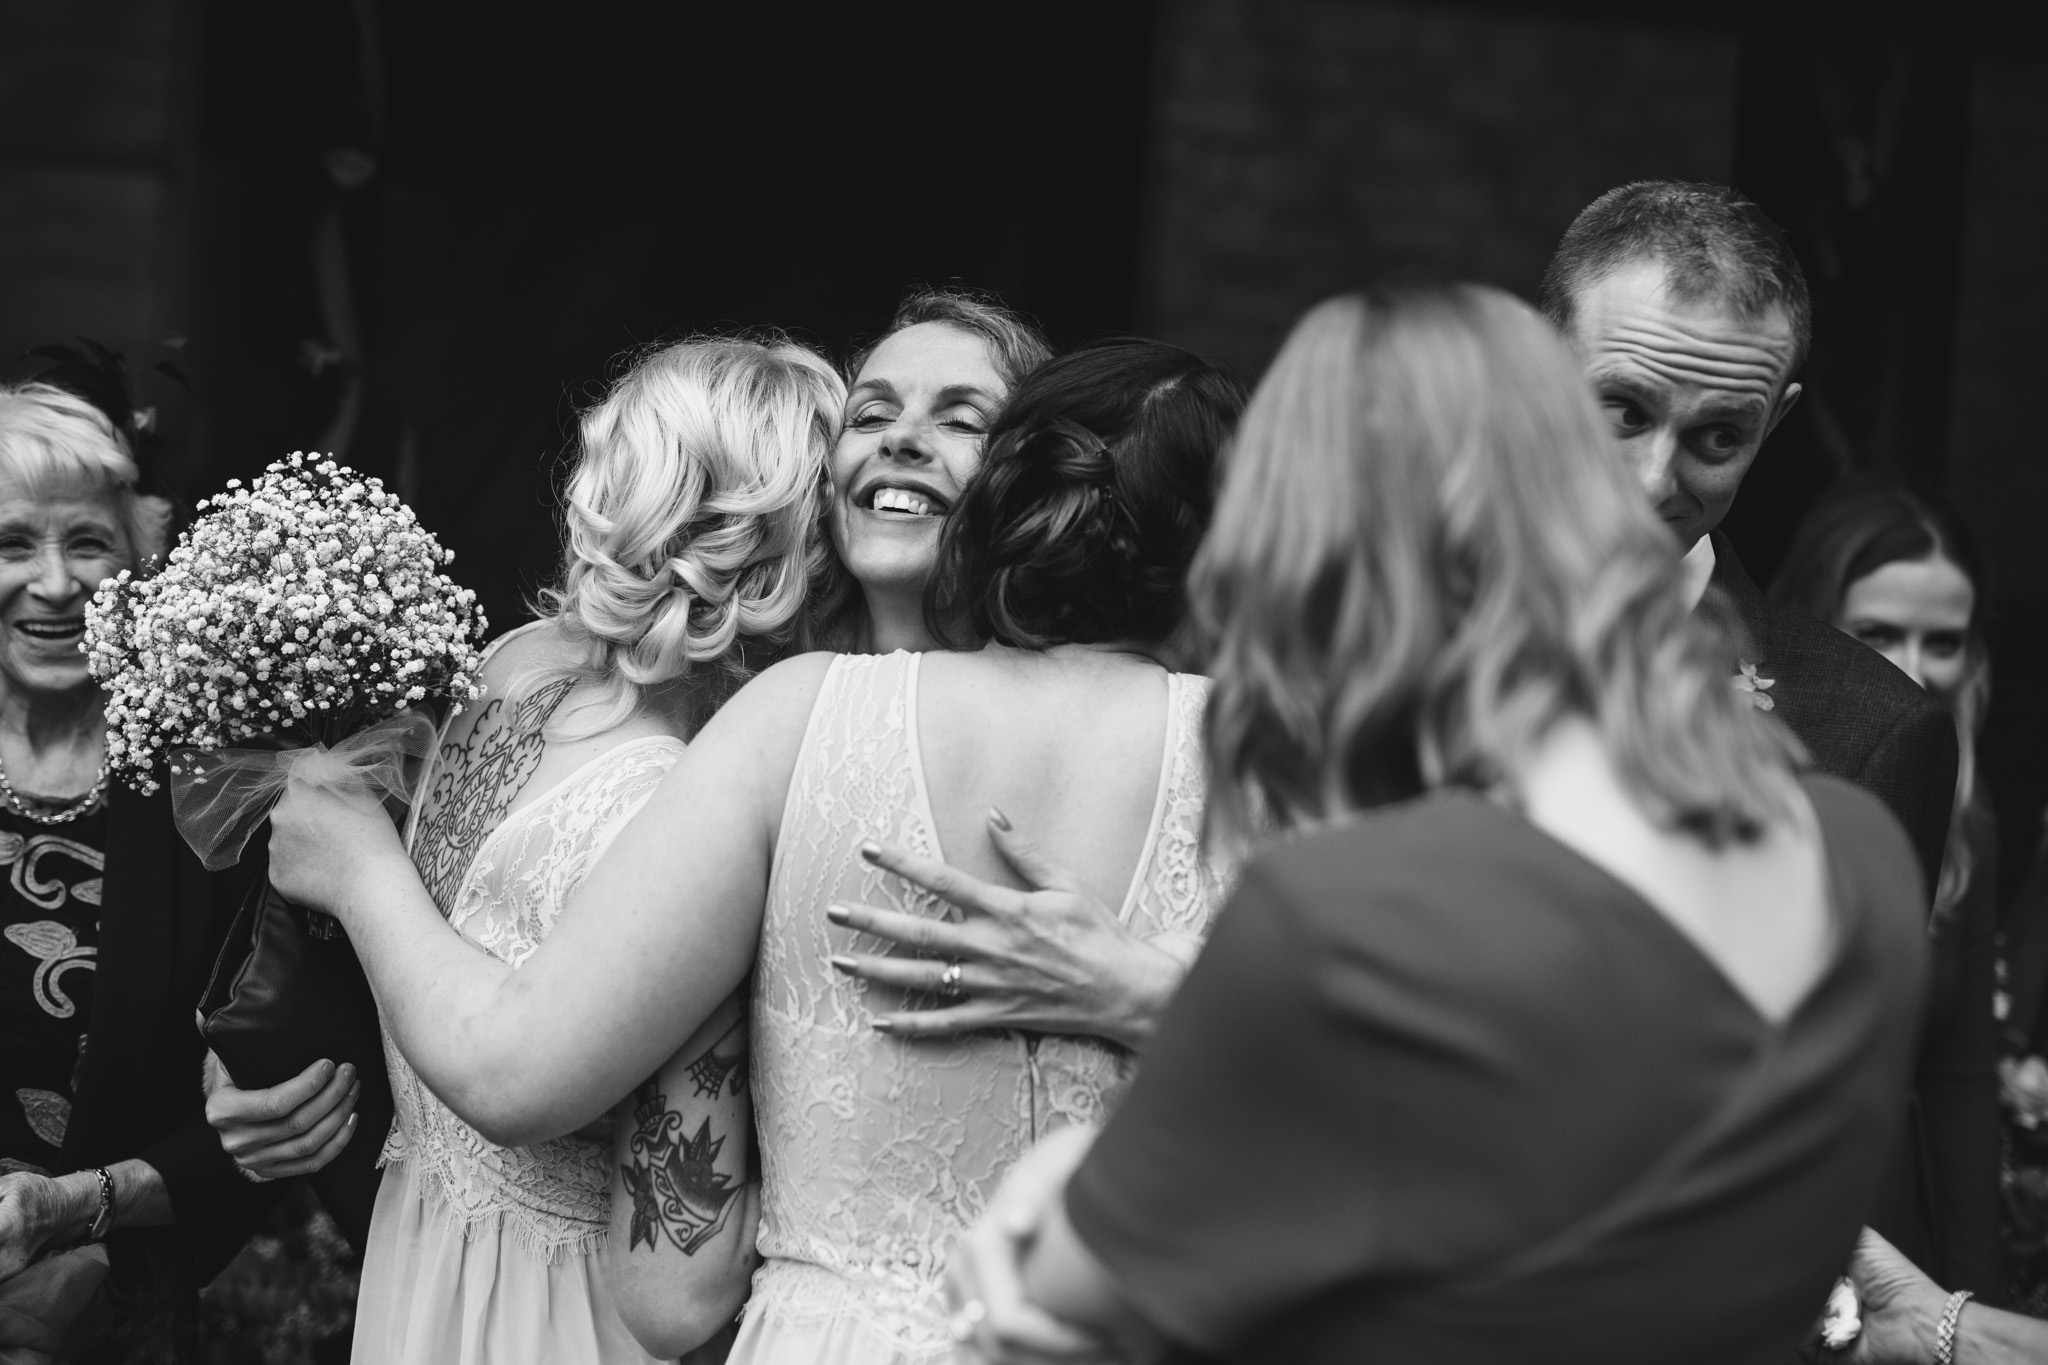 cat-lane-weddings__gorwell-barn-wedding-photography__clw__1445__C5A1371.jpg